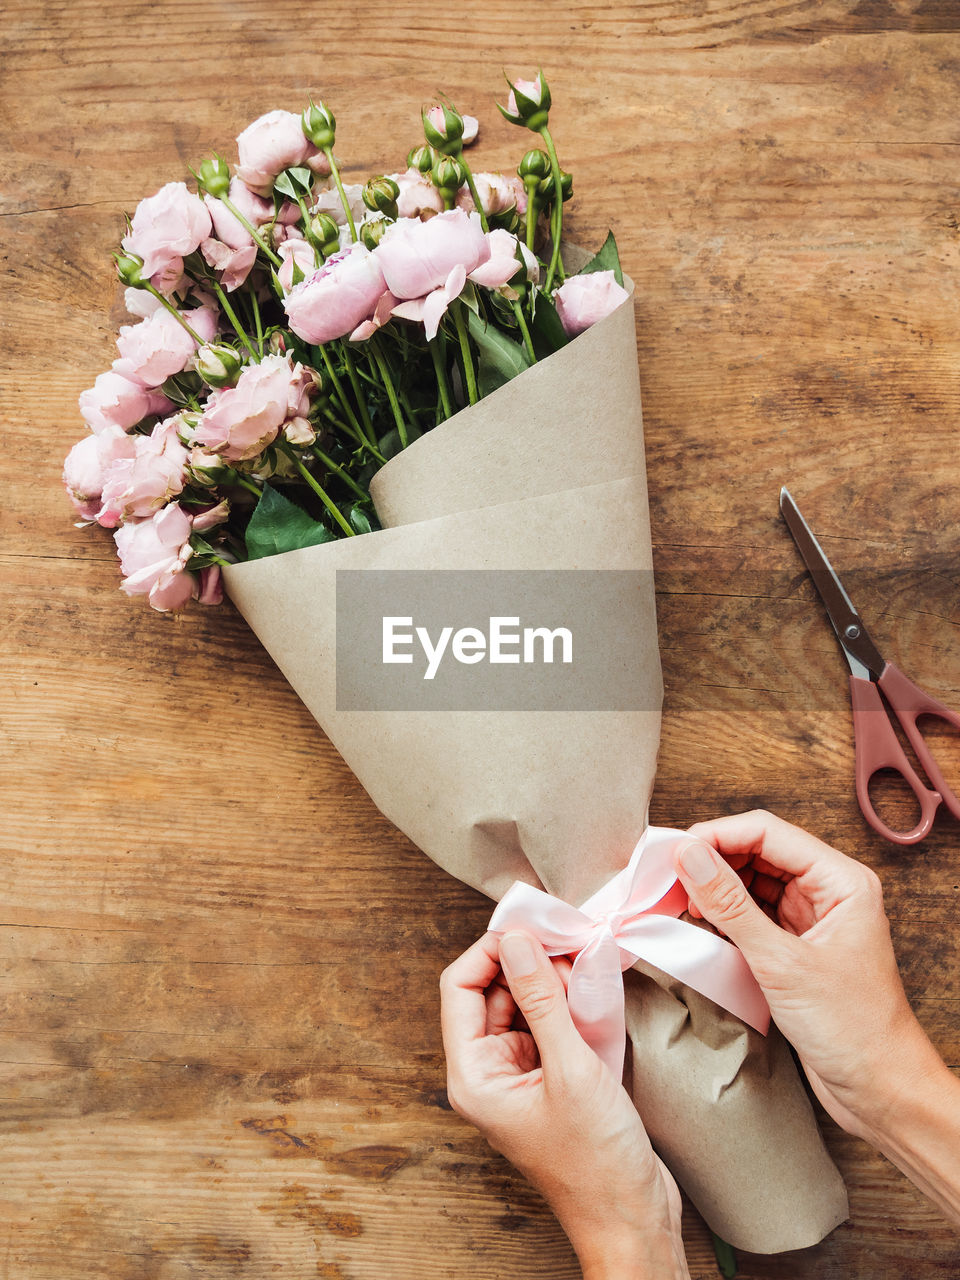 HIGH ANGLE VIEW OF HAND HOLDING BOUQUET OF PINK FLOWER